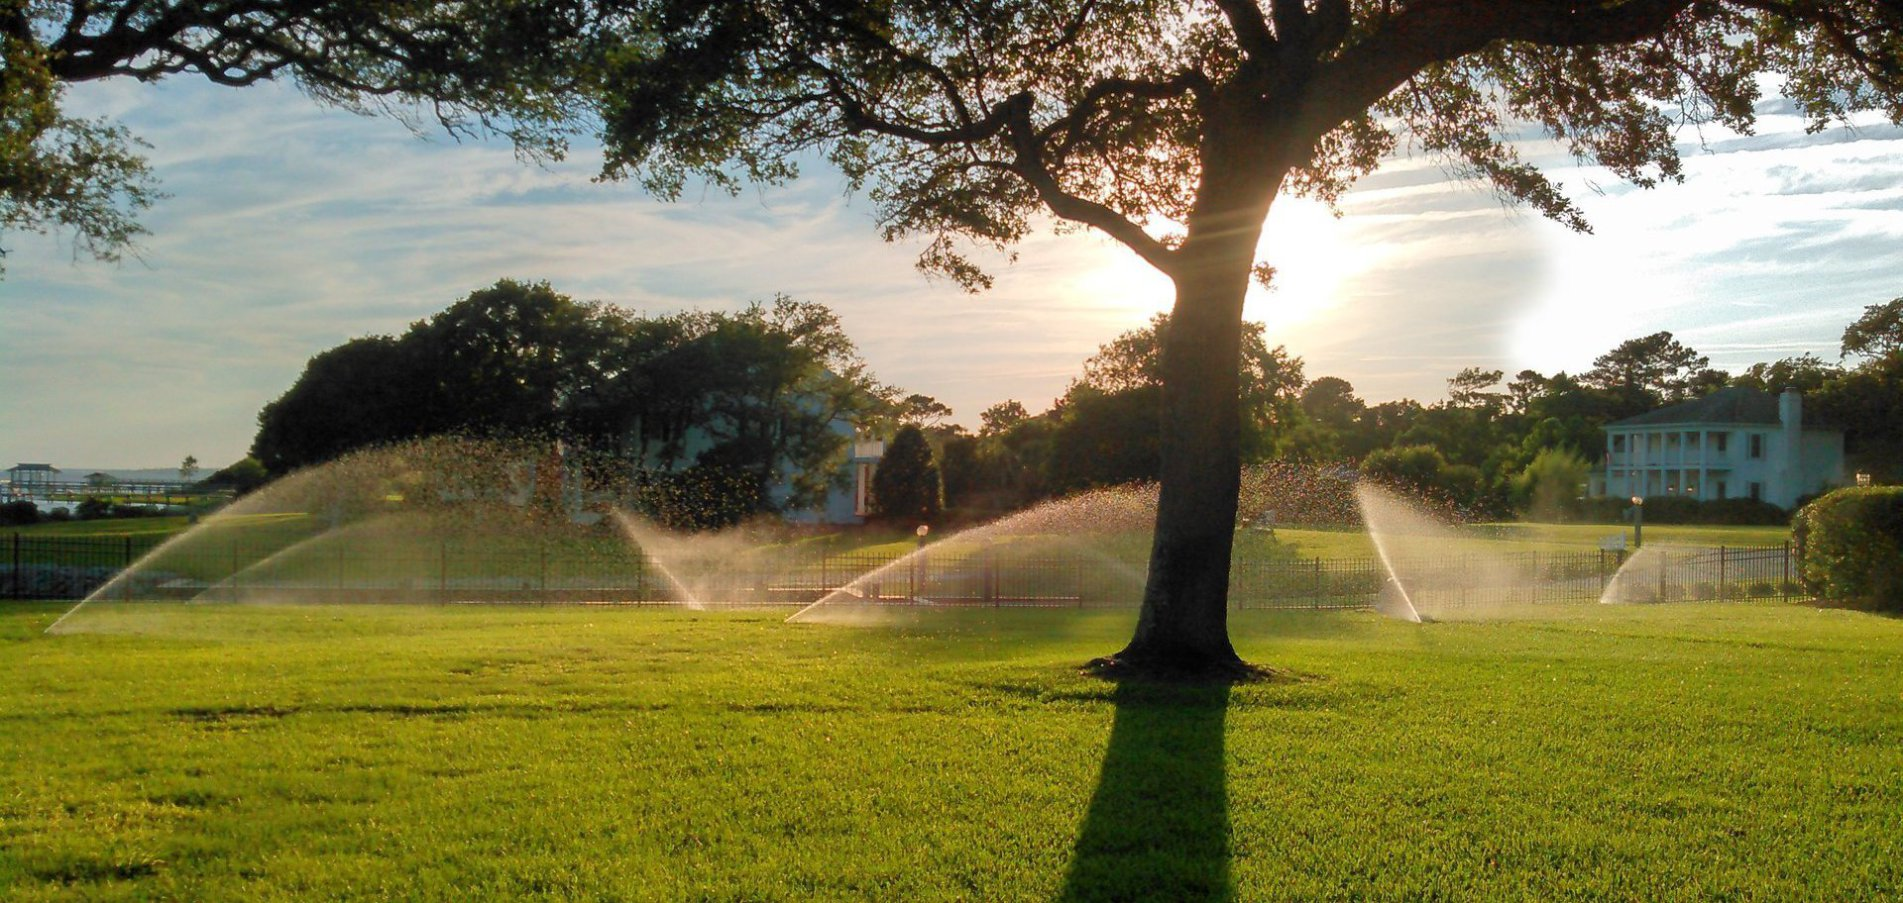 Hyman's Landscaping and Turf Management in Eastern North Carolina